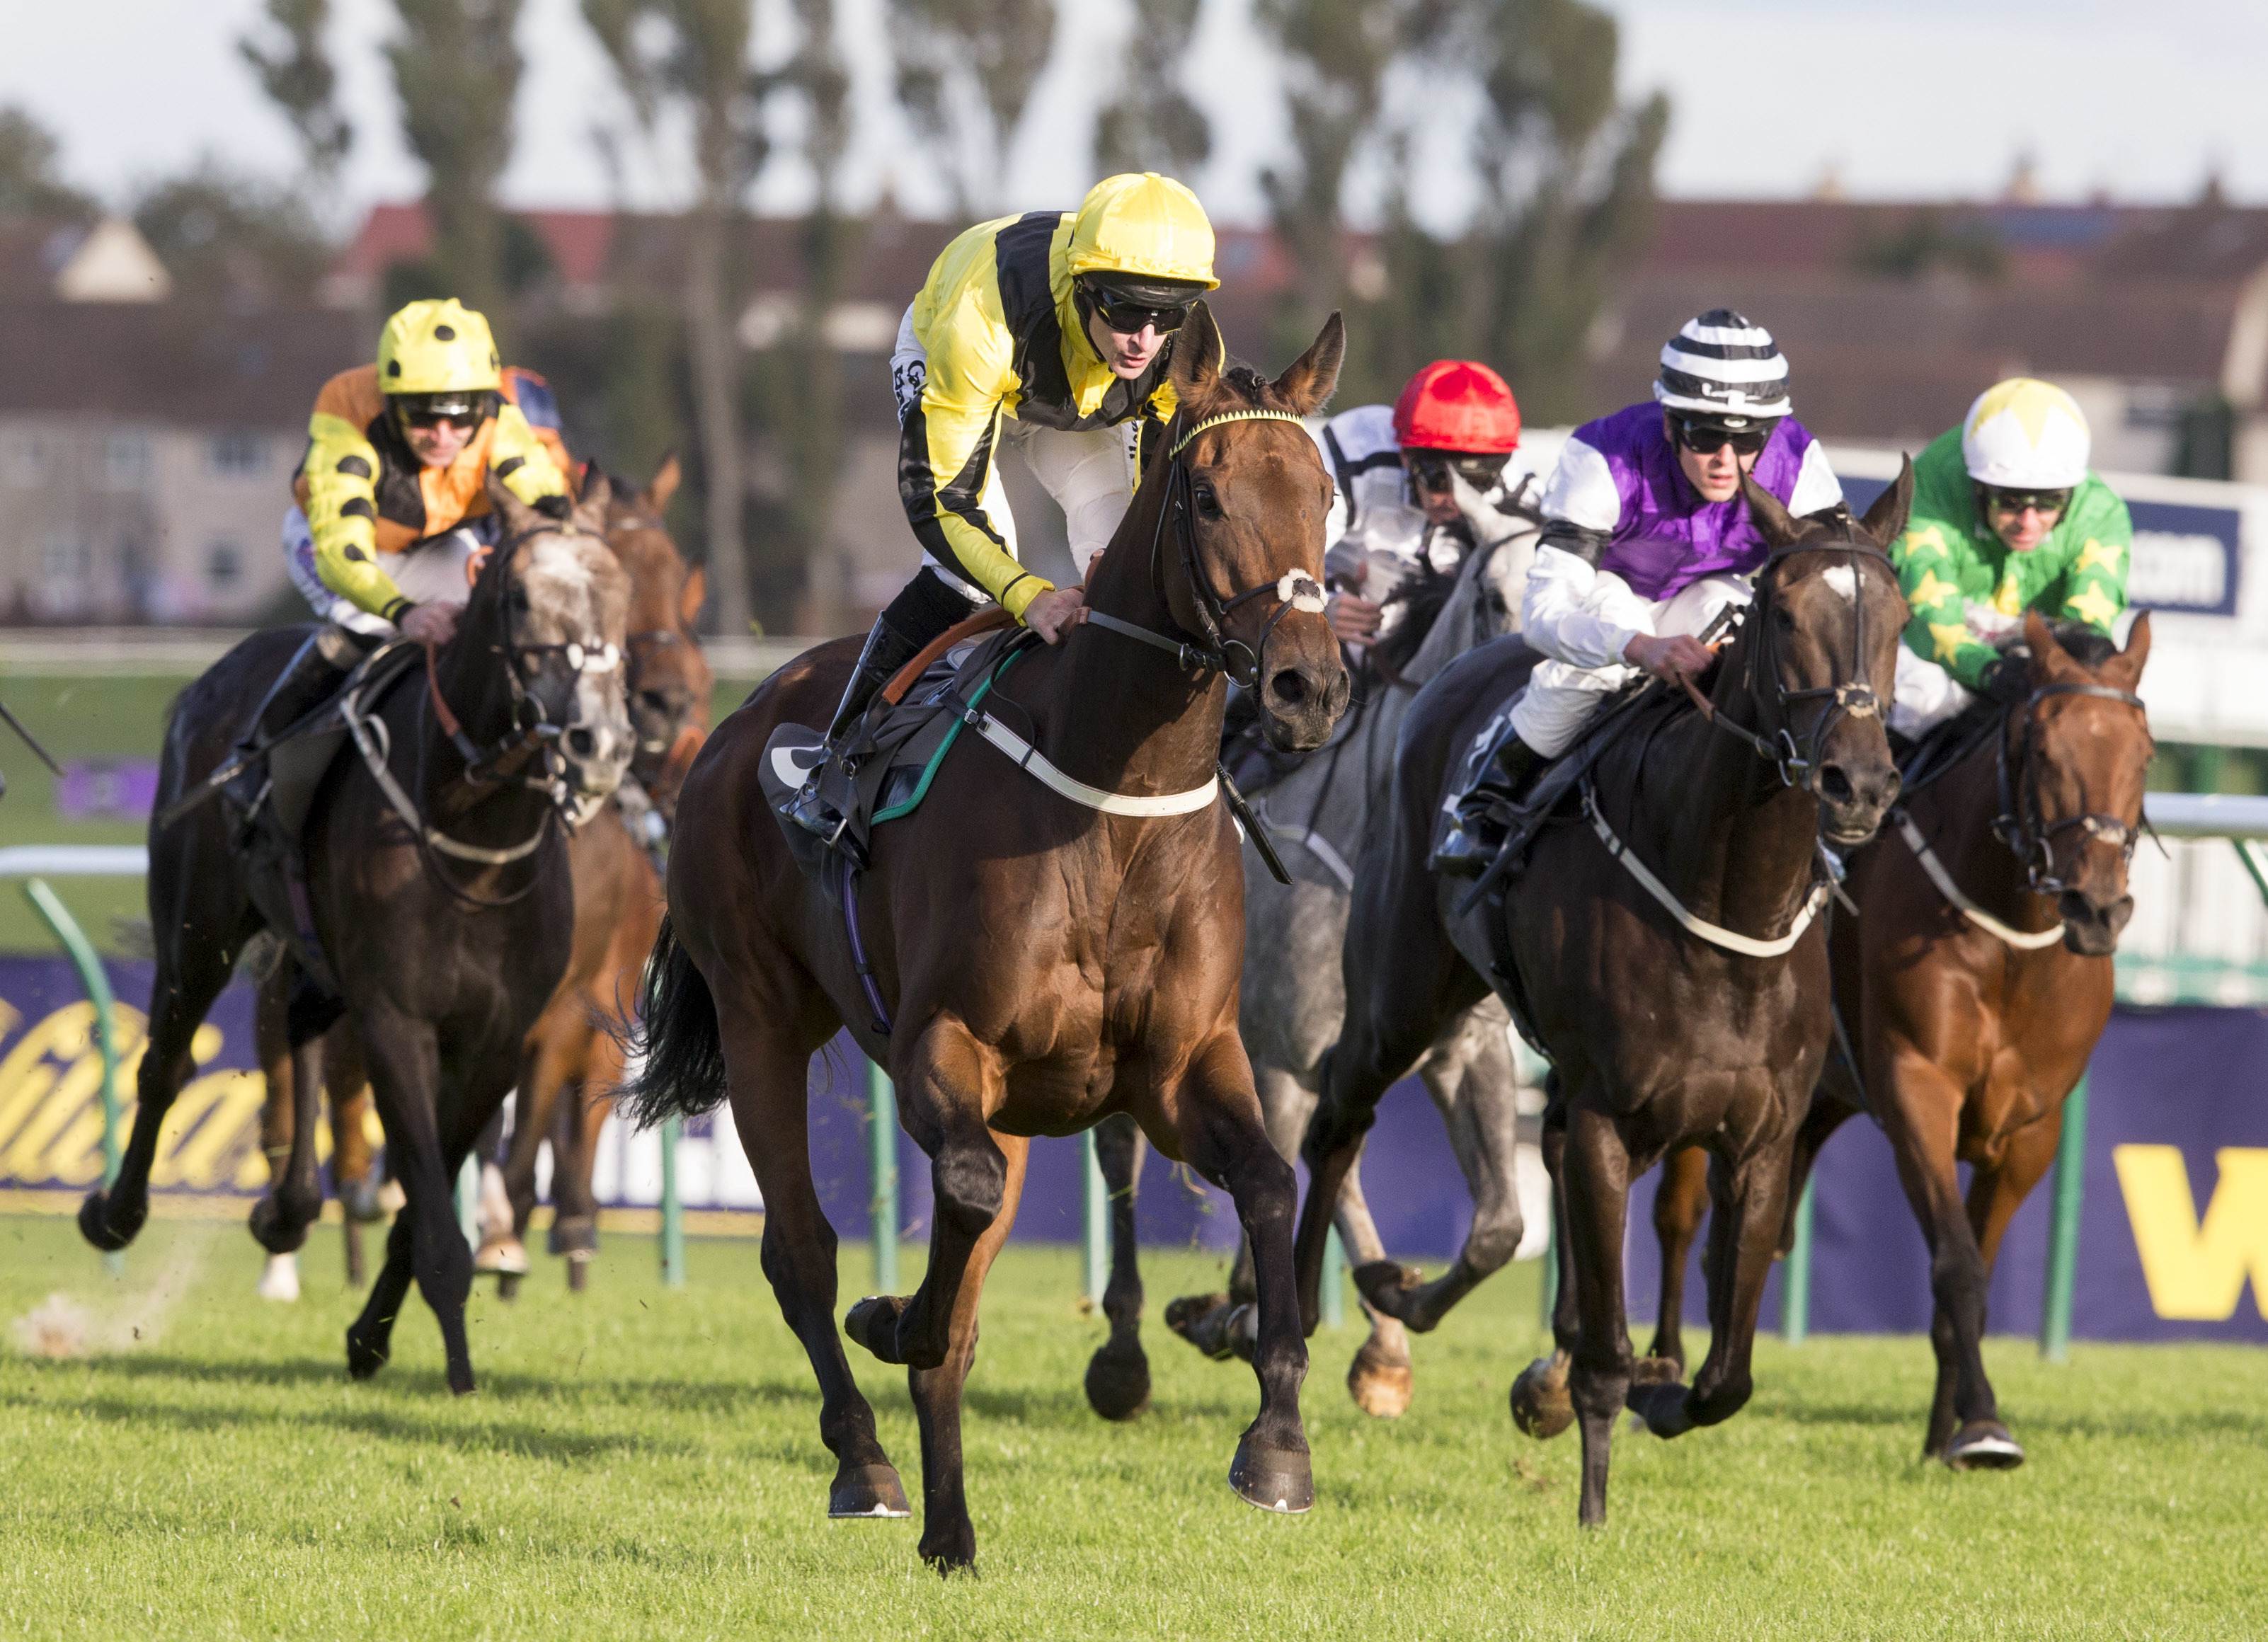 Horse Racing Betting Tips: Friday at Ayr